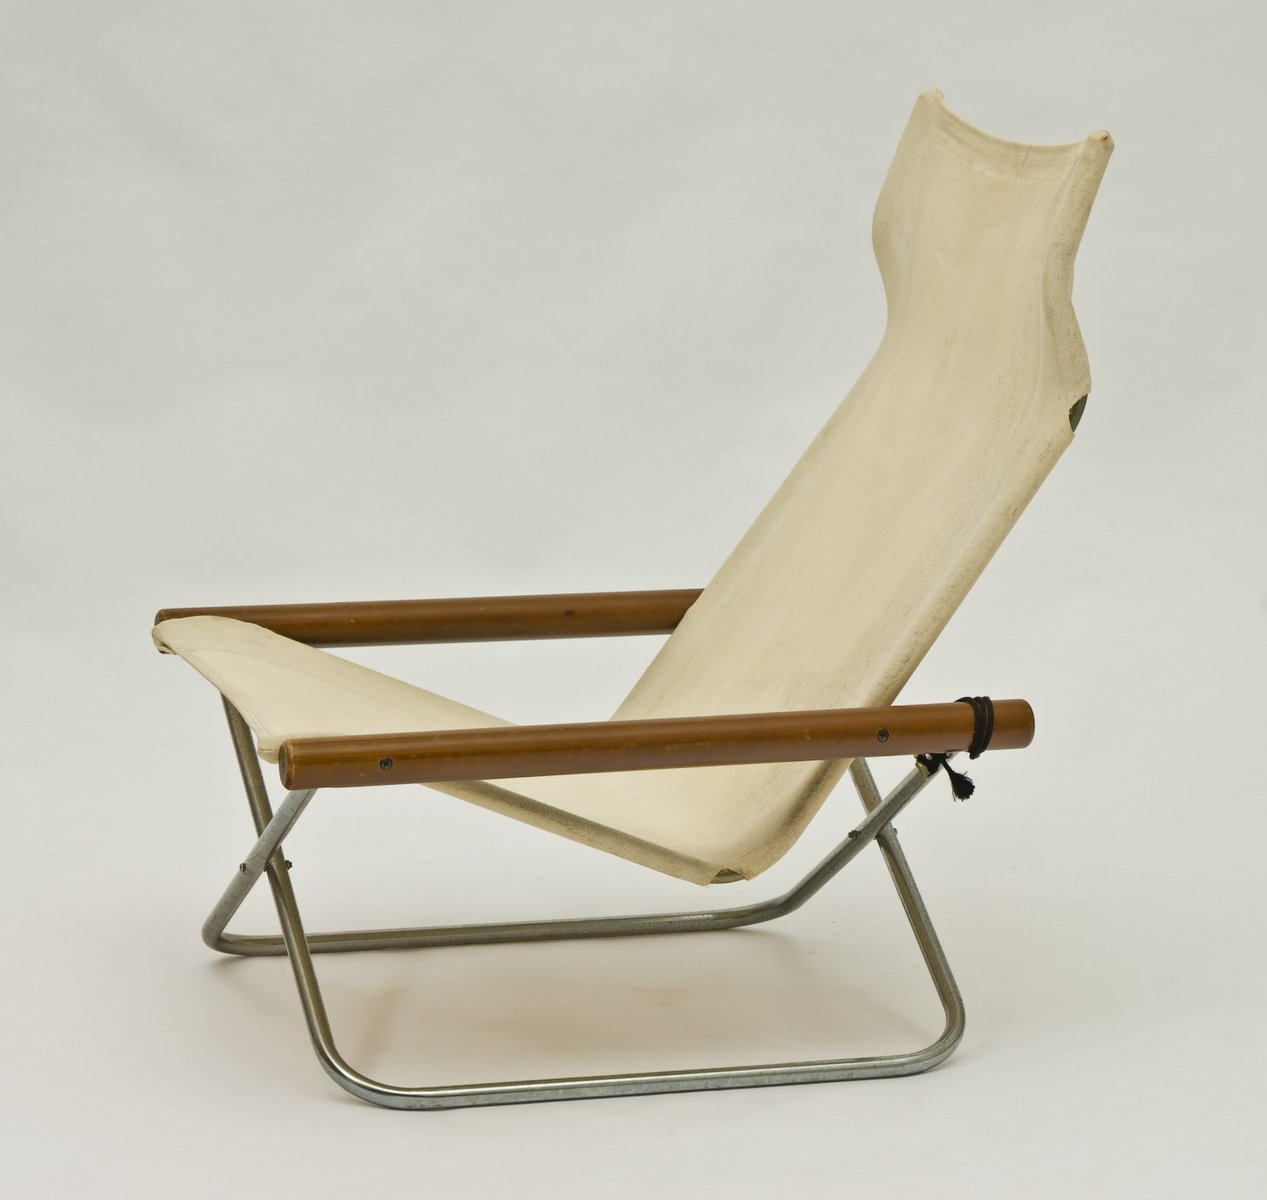 Japanese nychair folding chair by takeshi nii for sale at for Asian chairs for sale